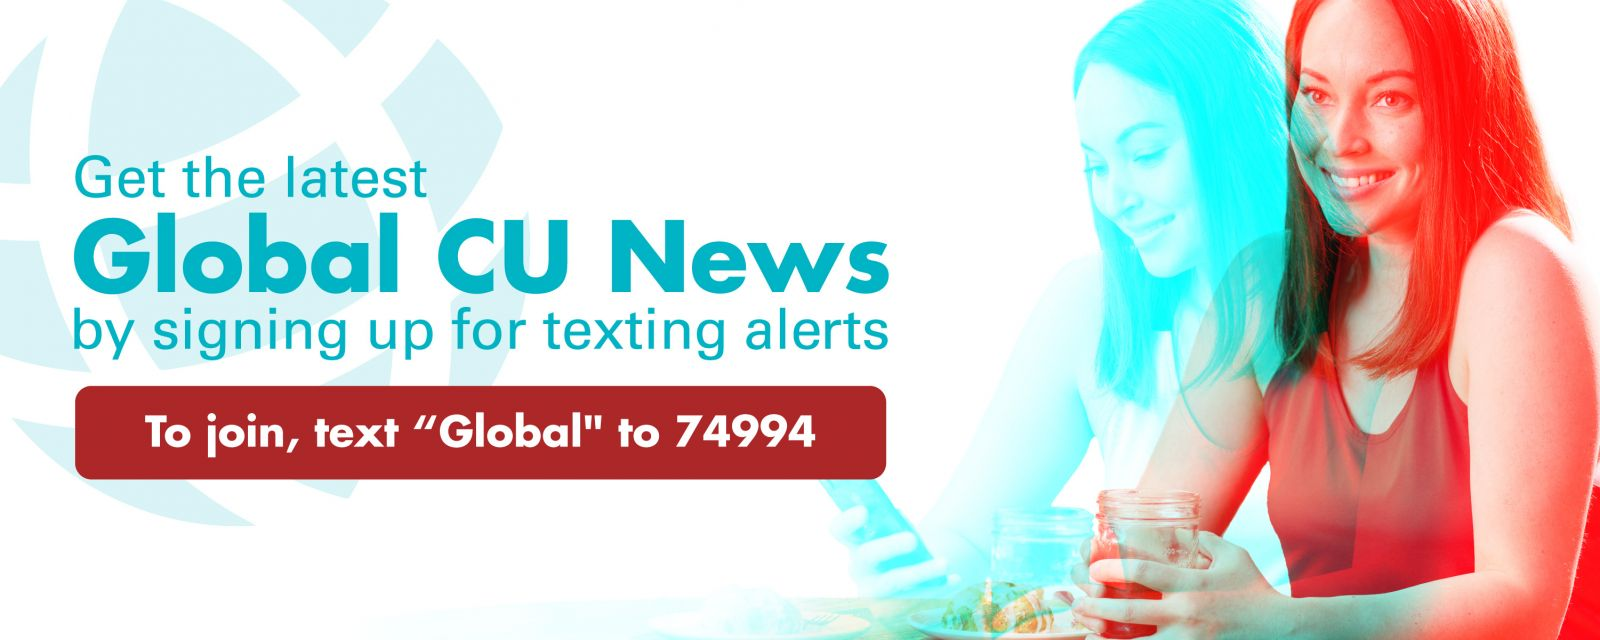 Opt in for text messages with Global